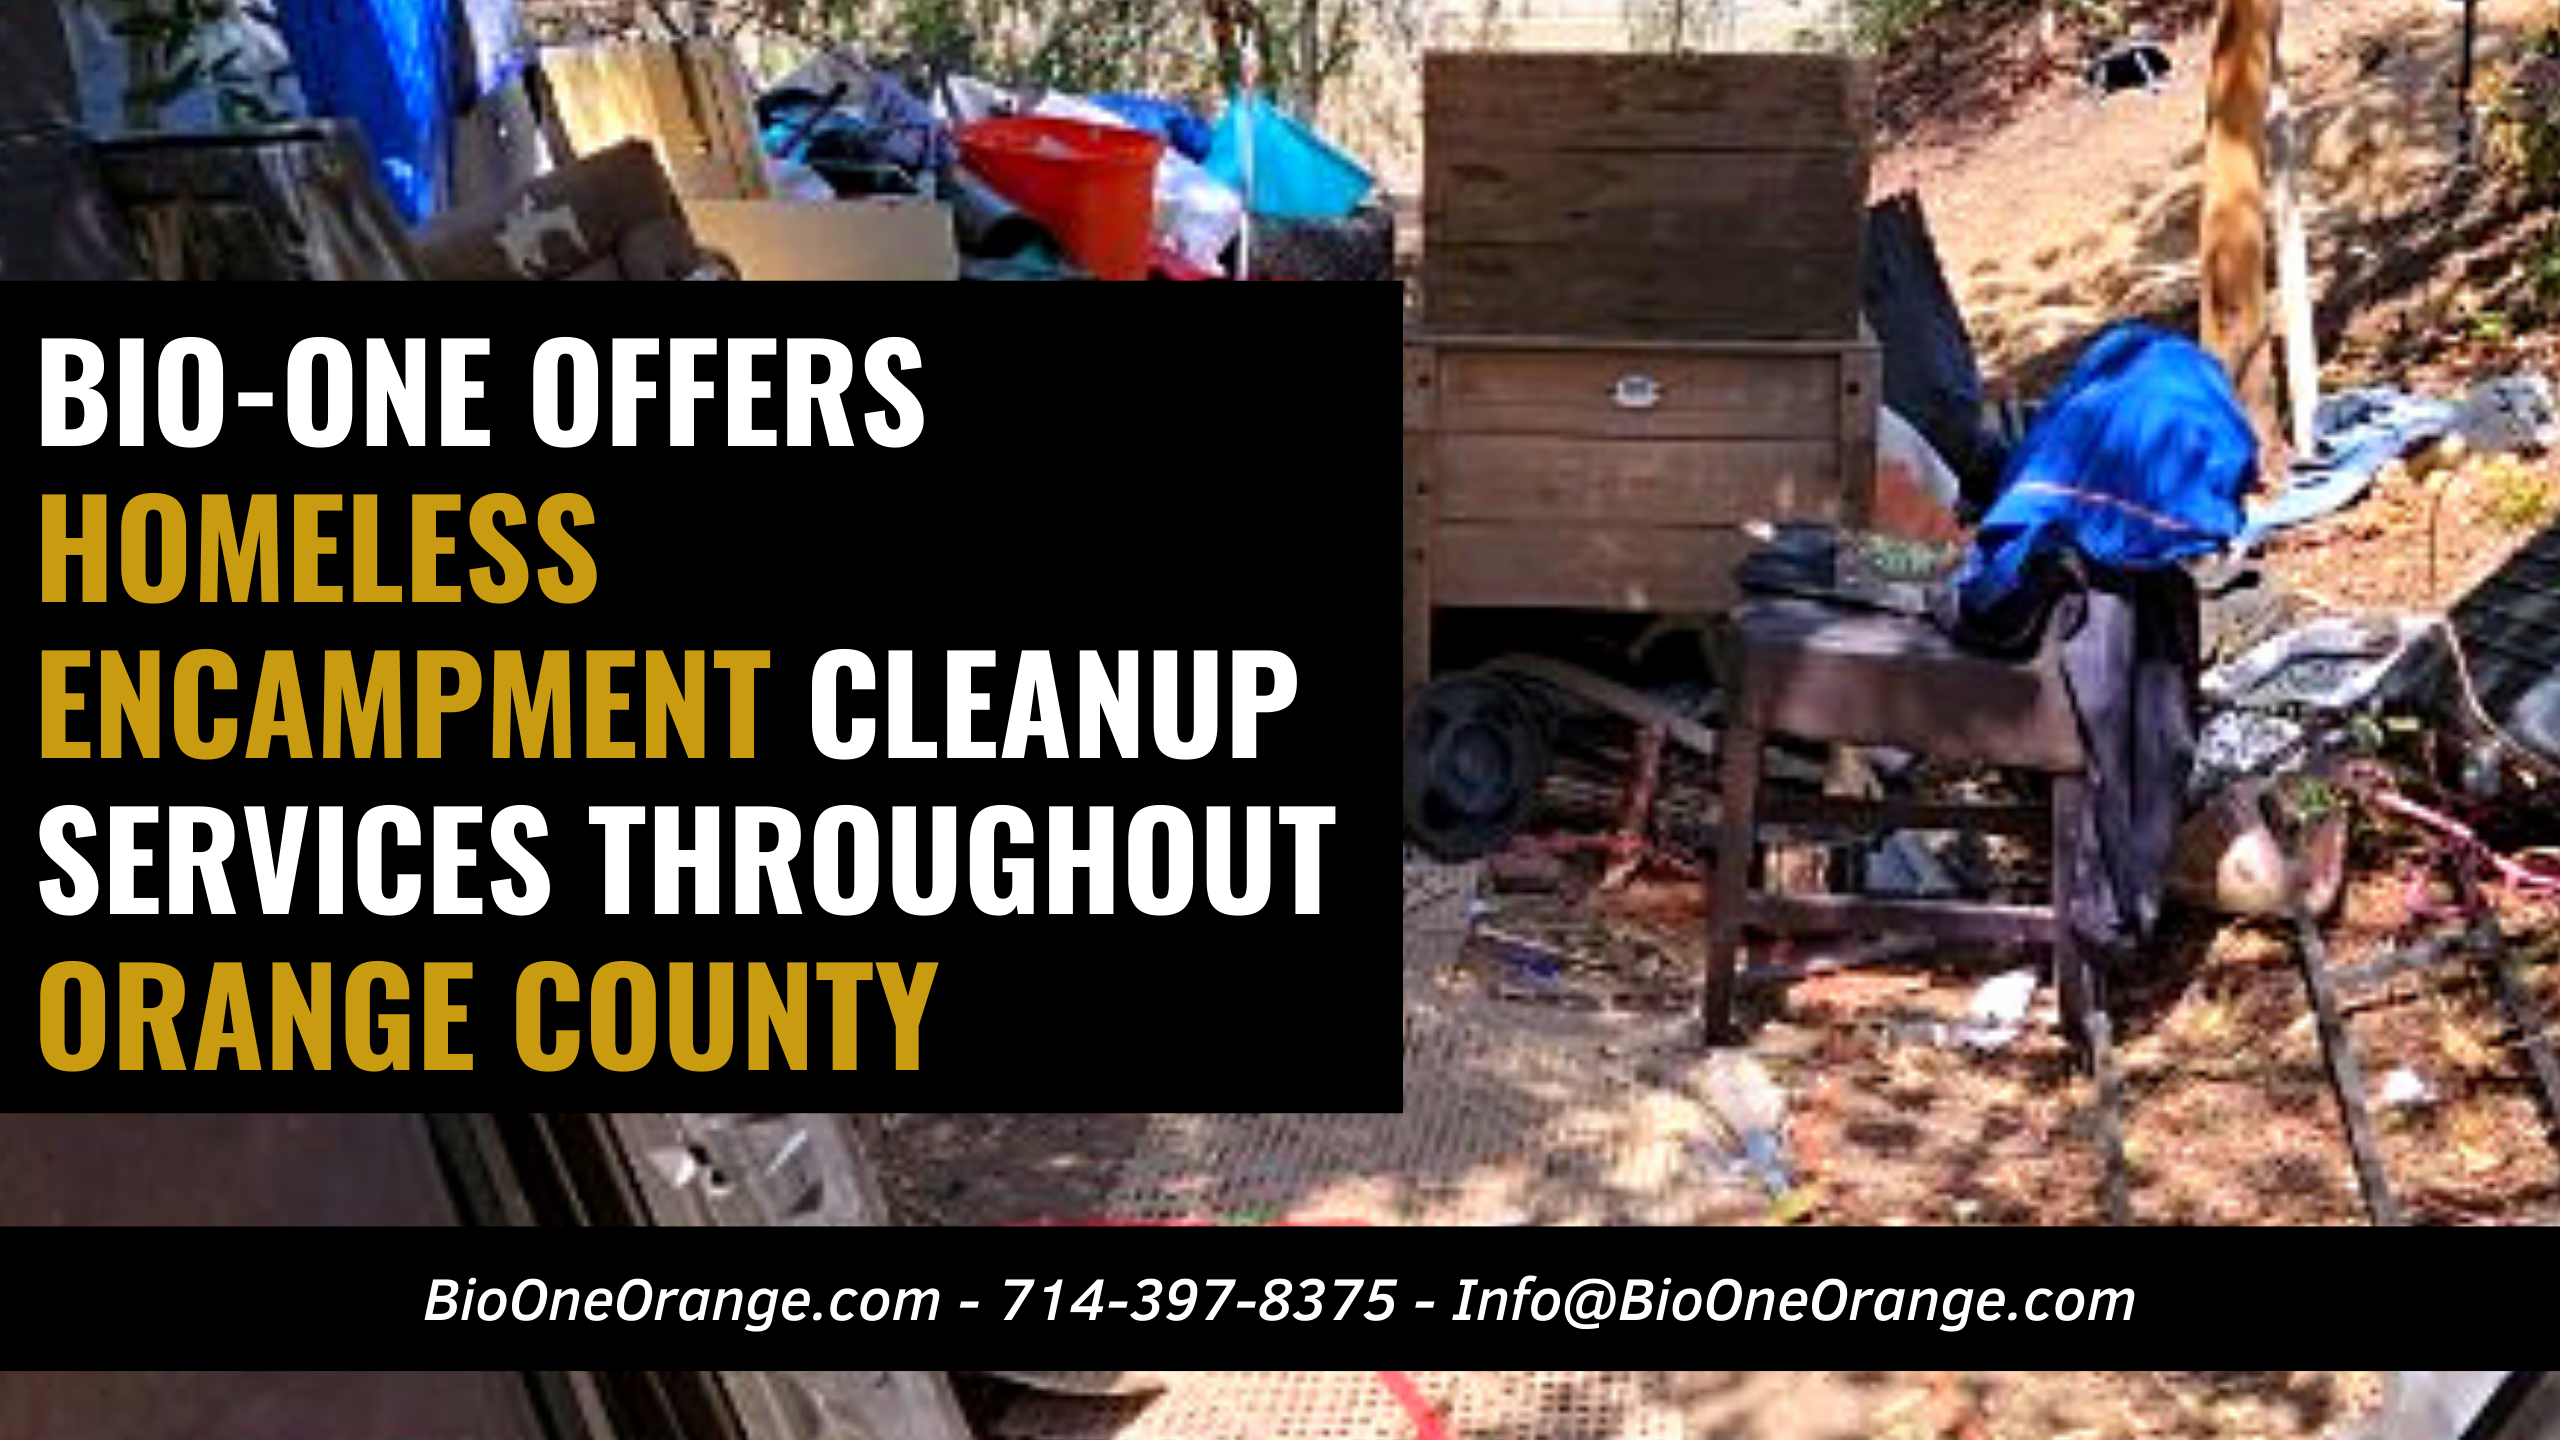 Bio-One offers Homeless Encampment Cleanup throughout Orange County and surrounding communities!